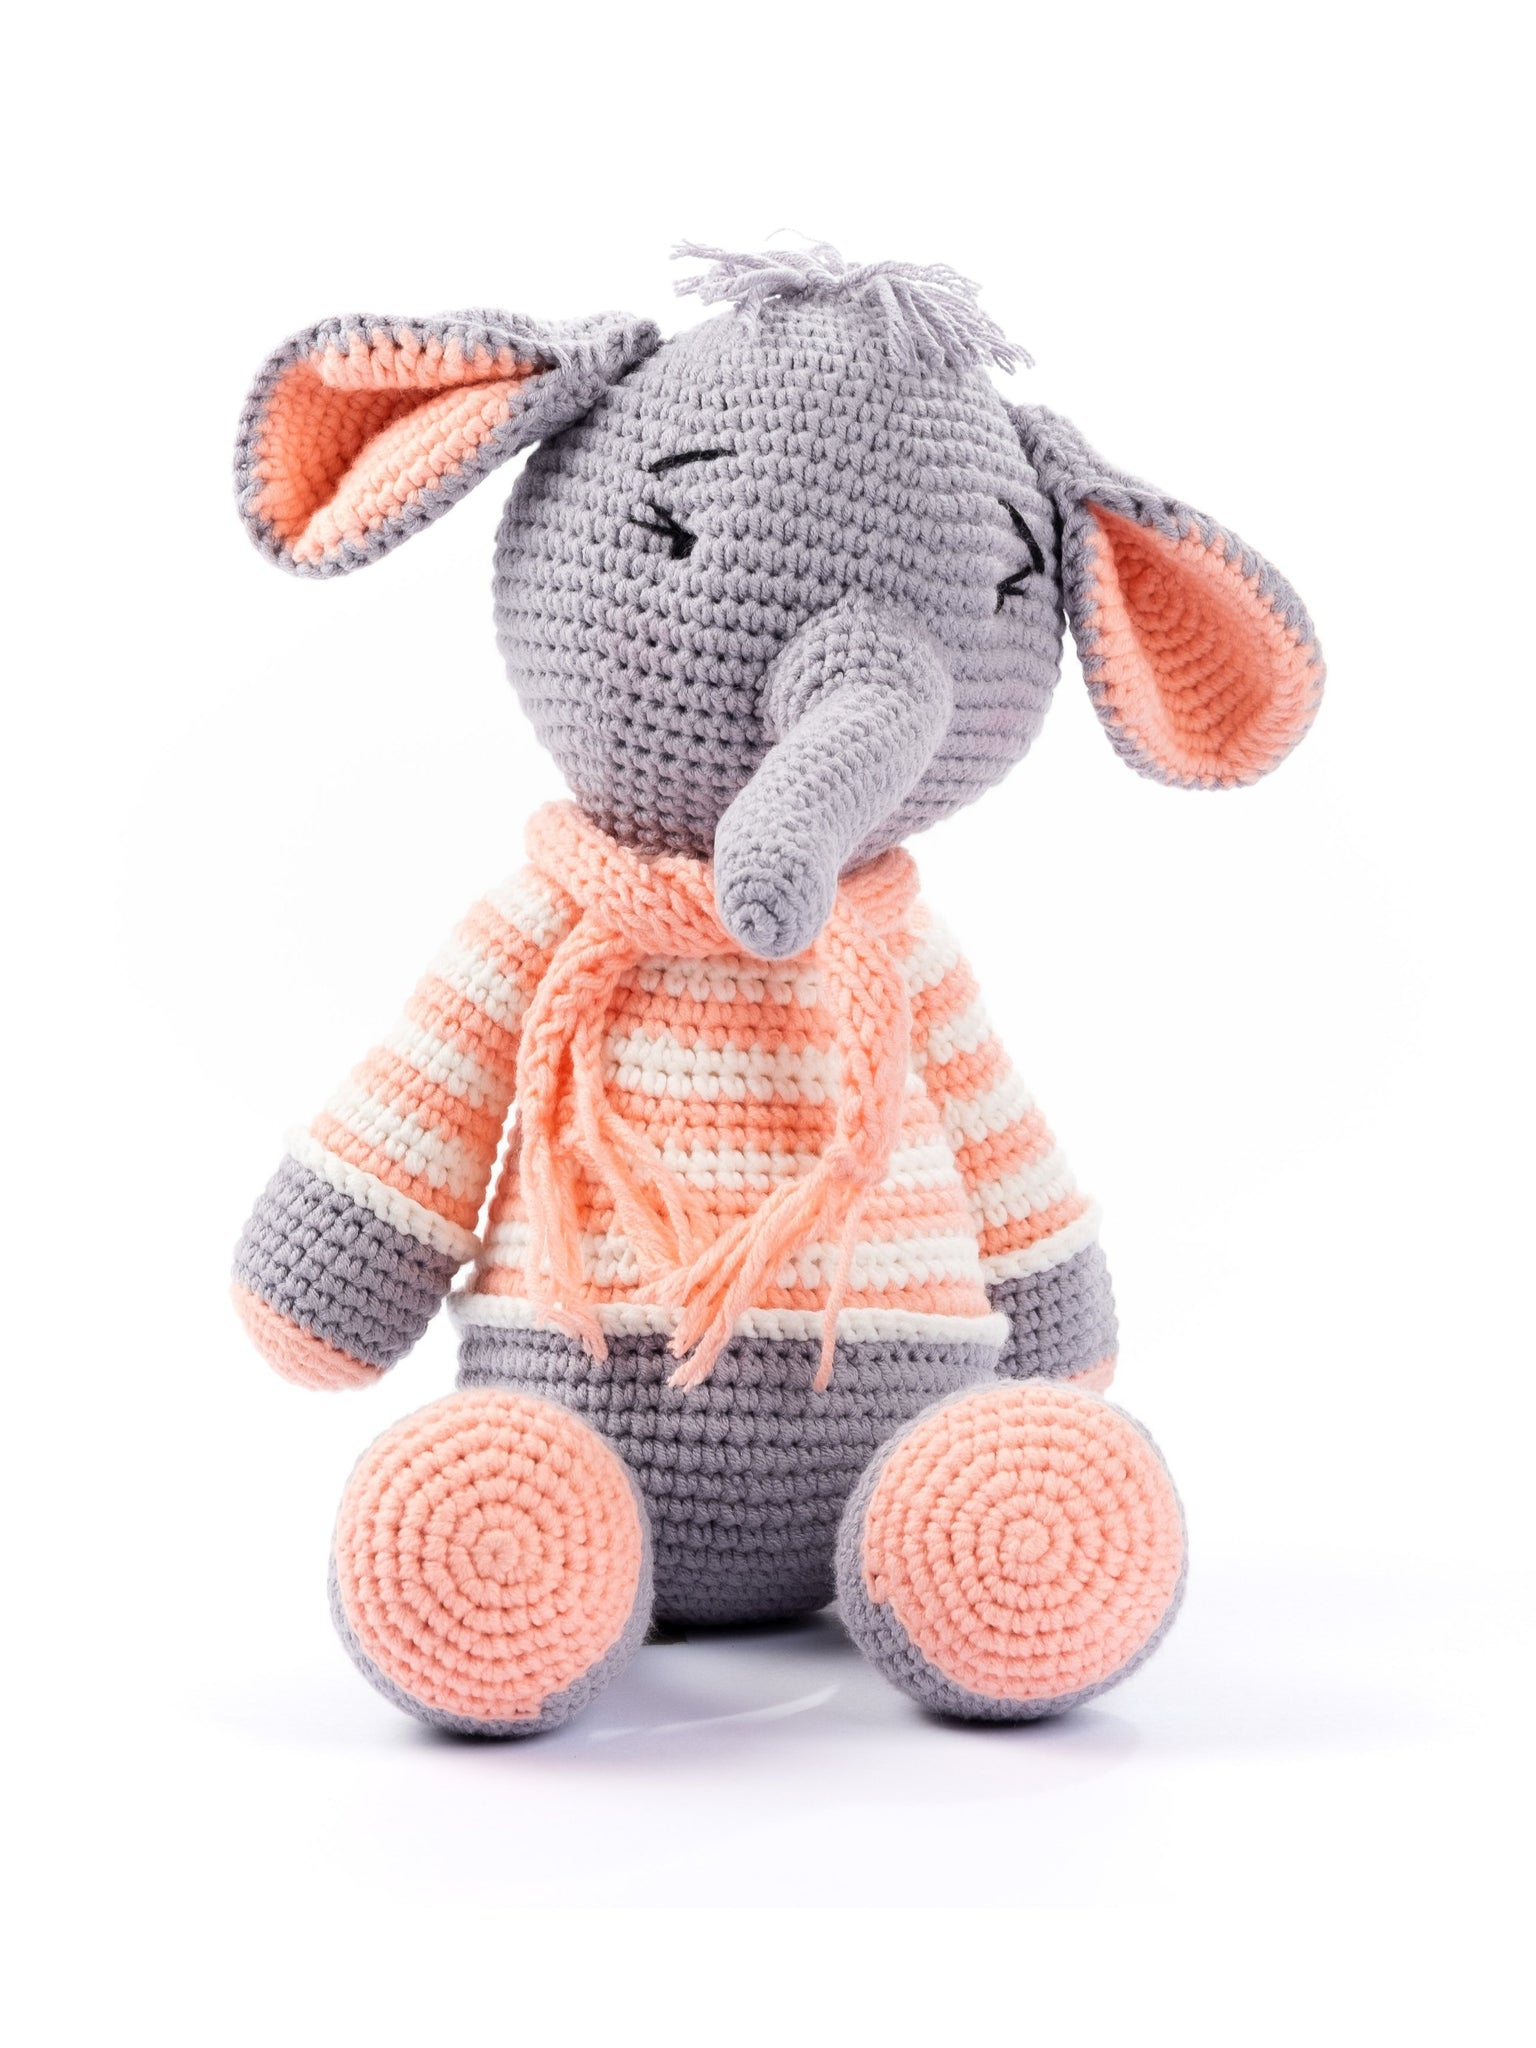 Elephant Ellie 7027